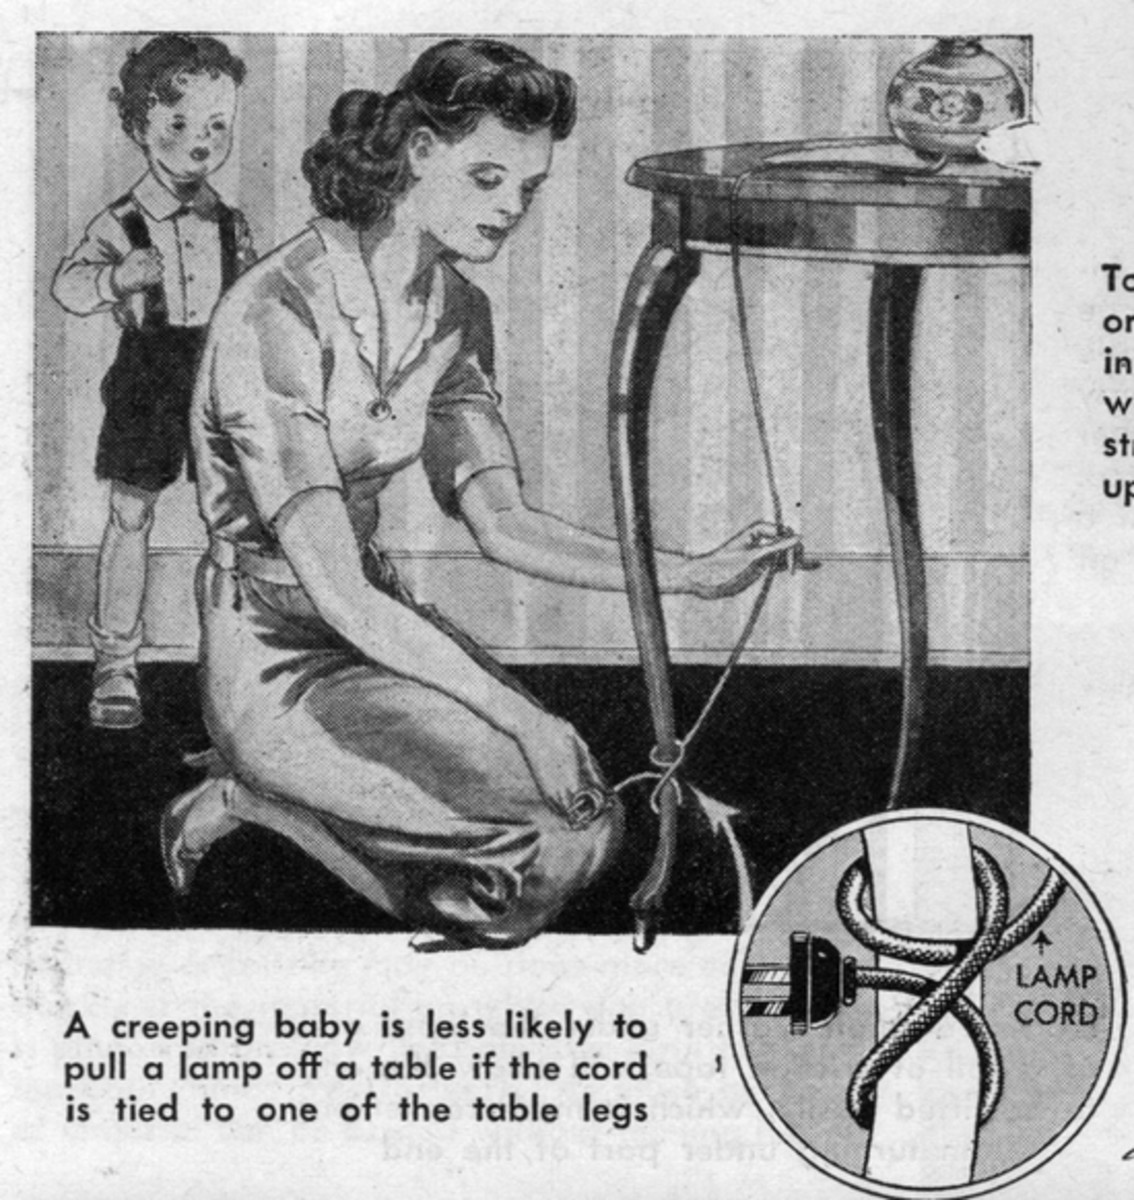 baby-lamp-cord-sm